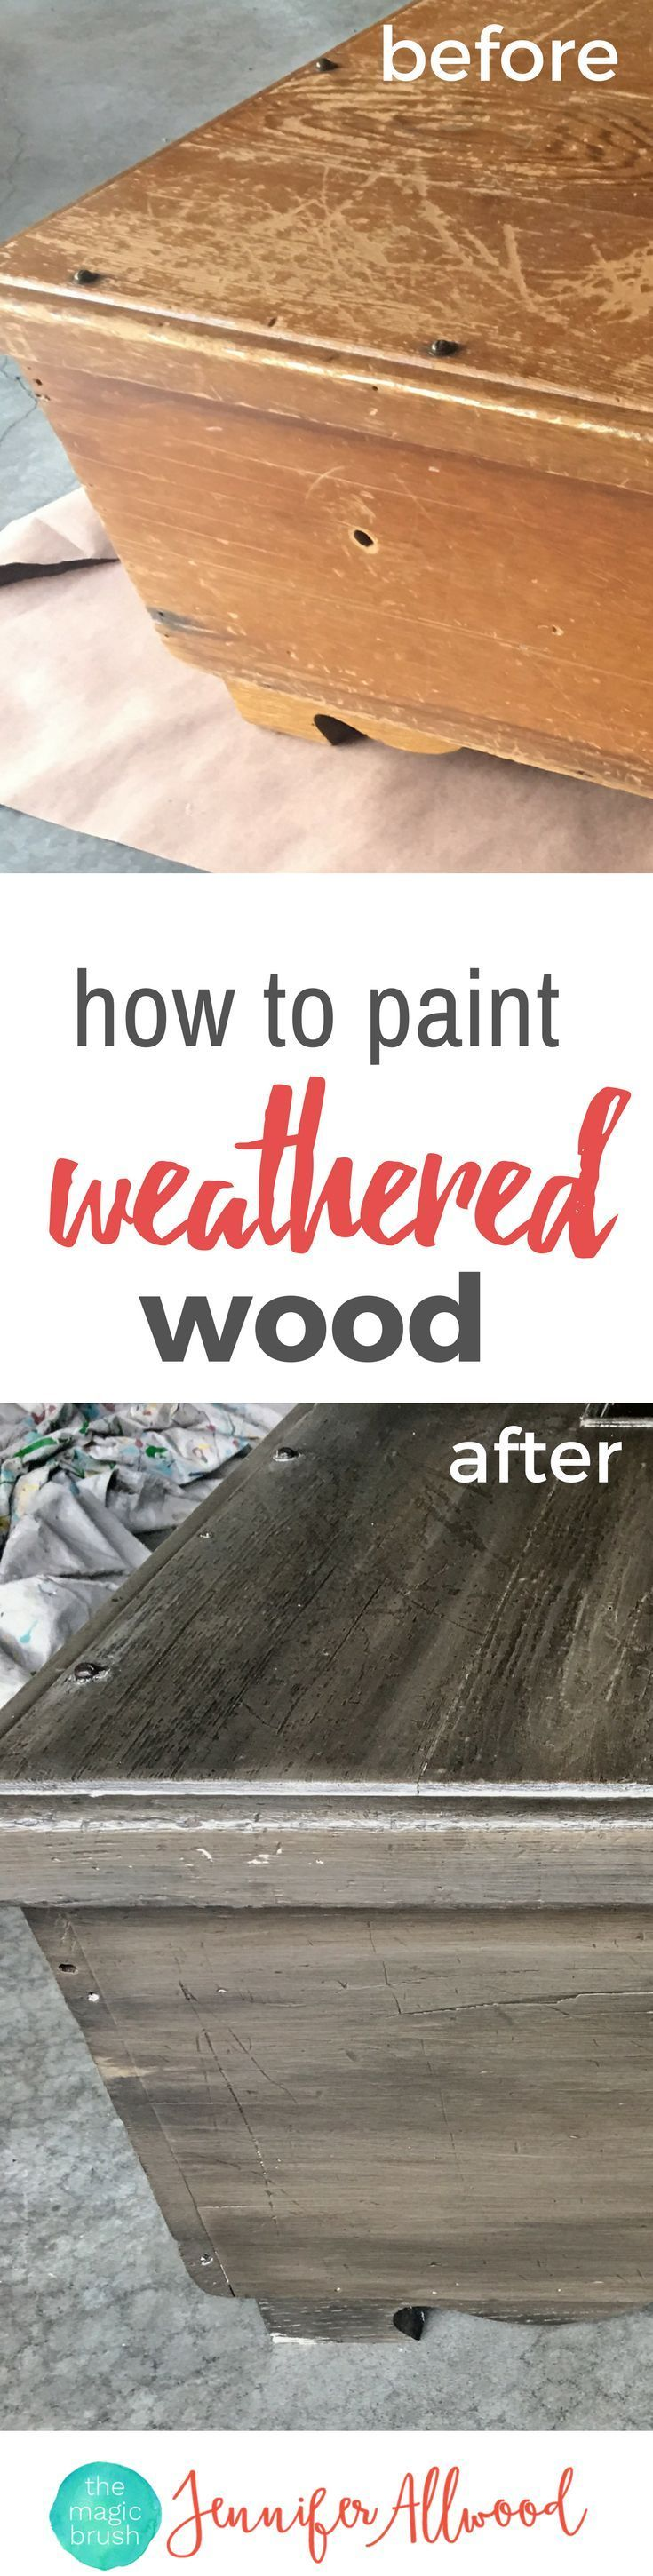 Ideas : How to paint weathered wood finish. Make any surface look like weathered barnwood and go with farmhouse decor. Painting Tips and Techniques by theMagicBrushin.com #homedecor #diy #diyhomedecor #repurpose #painting #paint #wood #paintfinish #howto #diyprojects